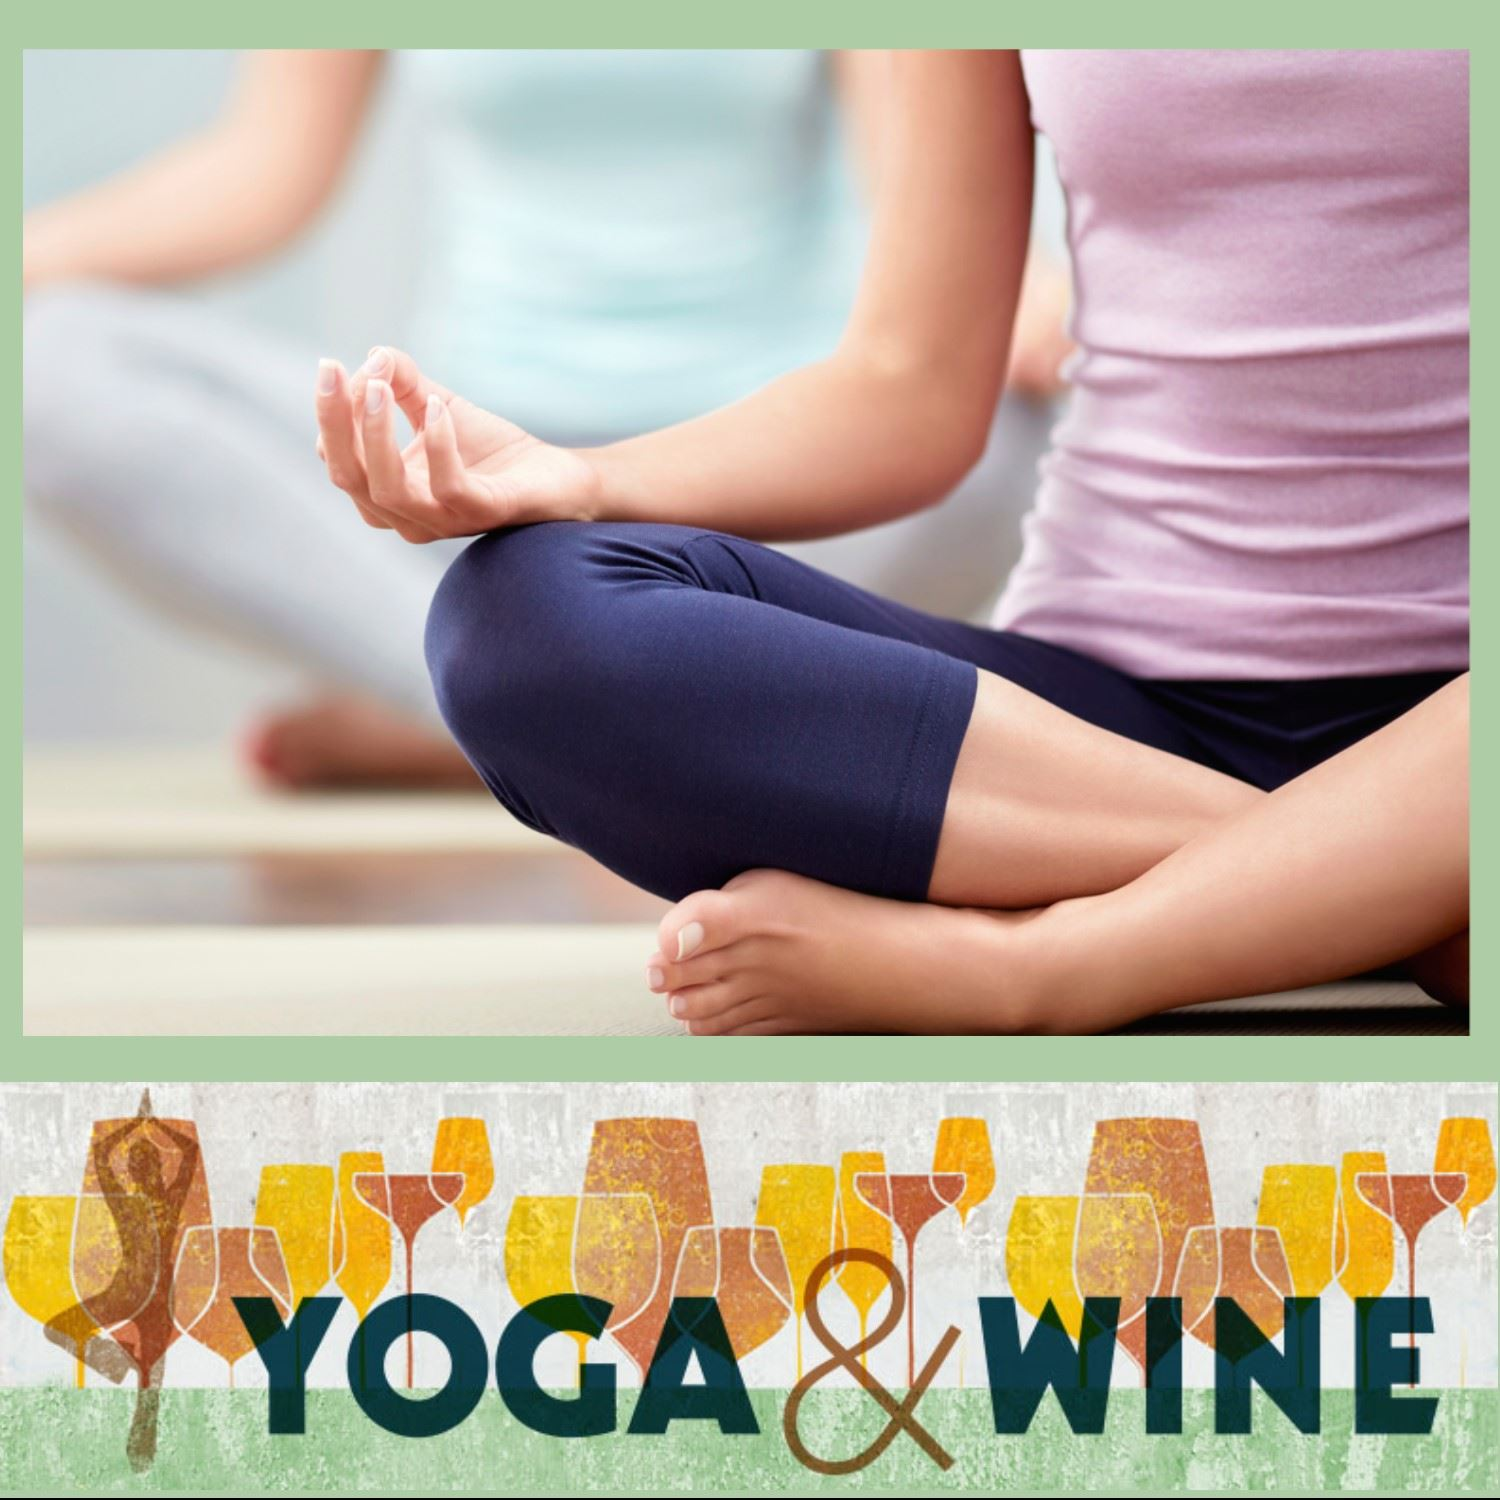 Yoga and Wine Event (square)